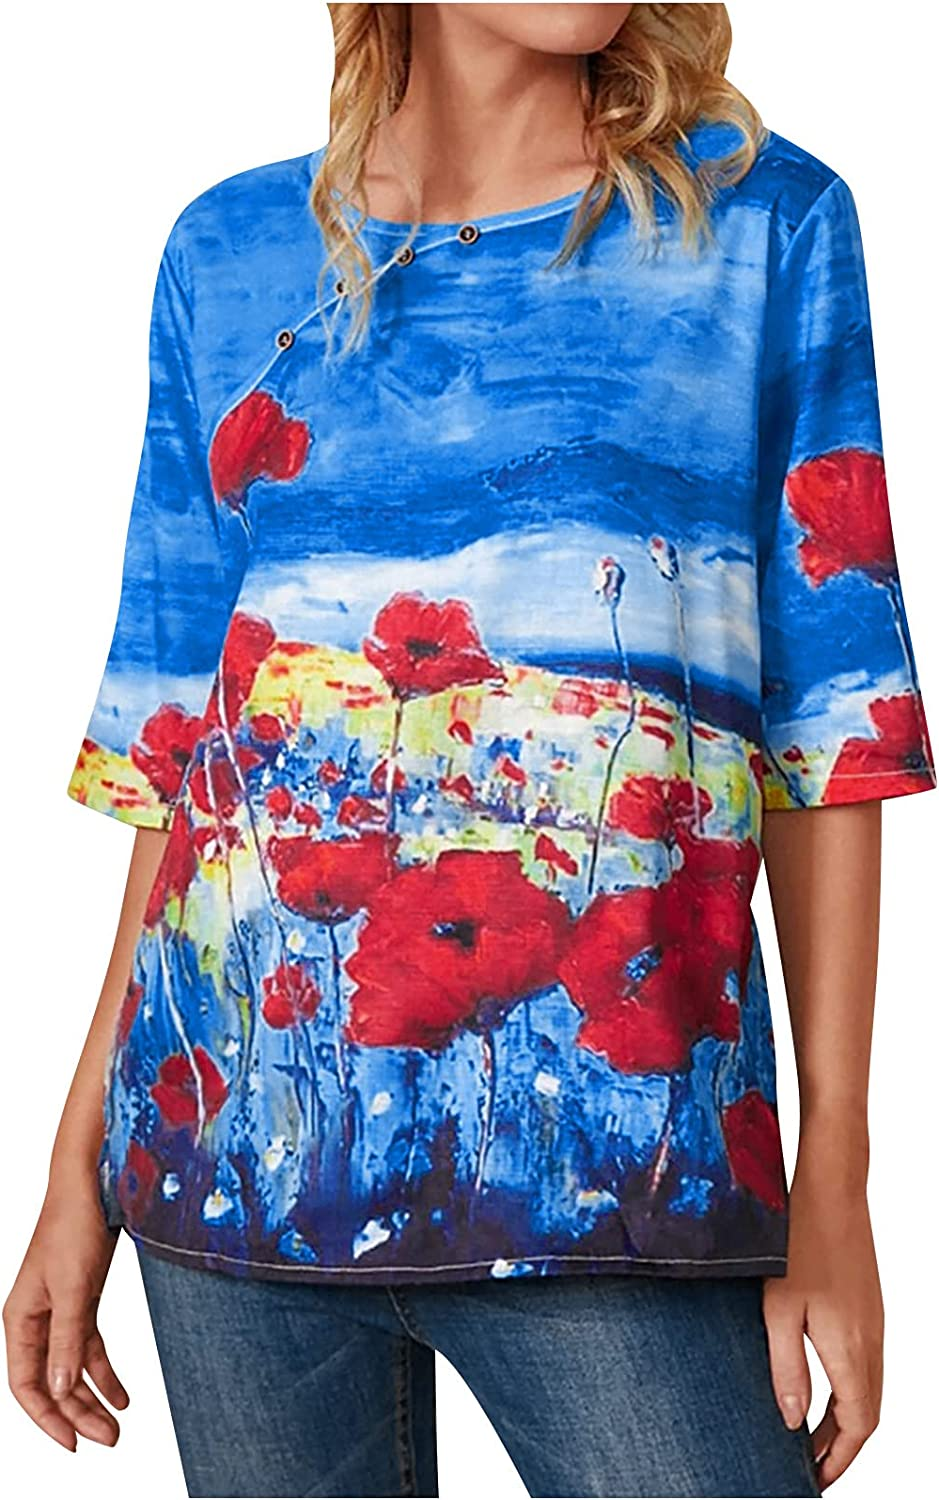 Cute Tops for Women Summer Casual 3D Butterfly Flower Print Round Neck Half Sleeve Blouses Tee Fashion T Shirts